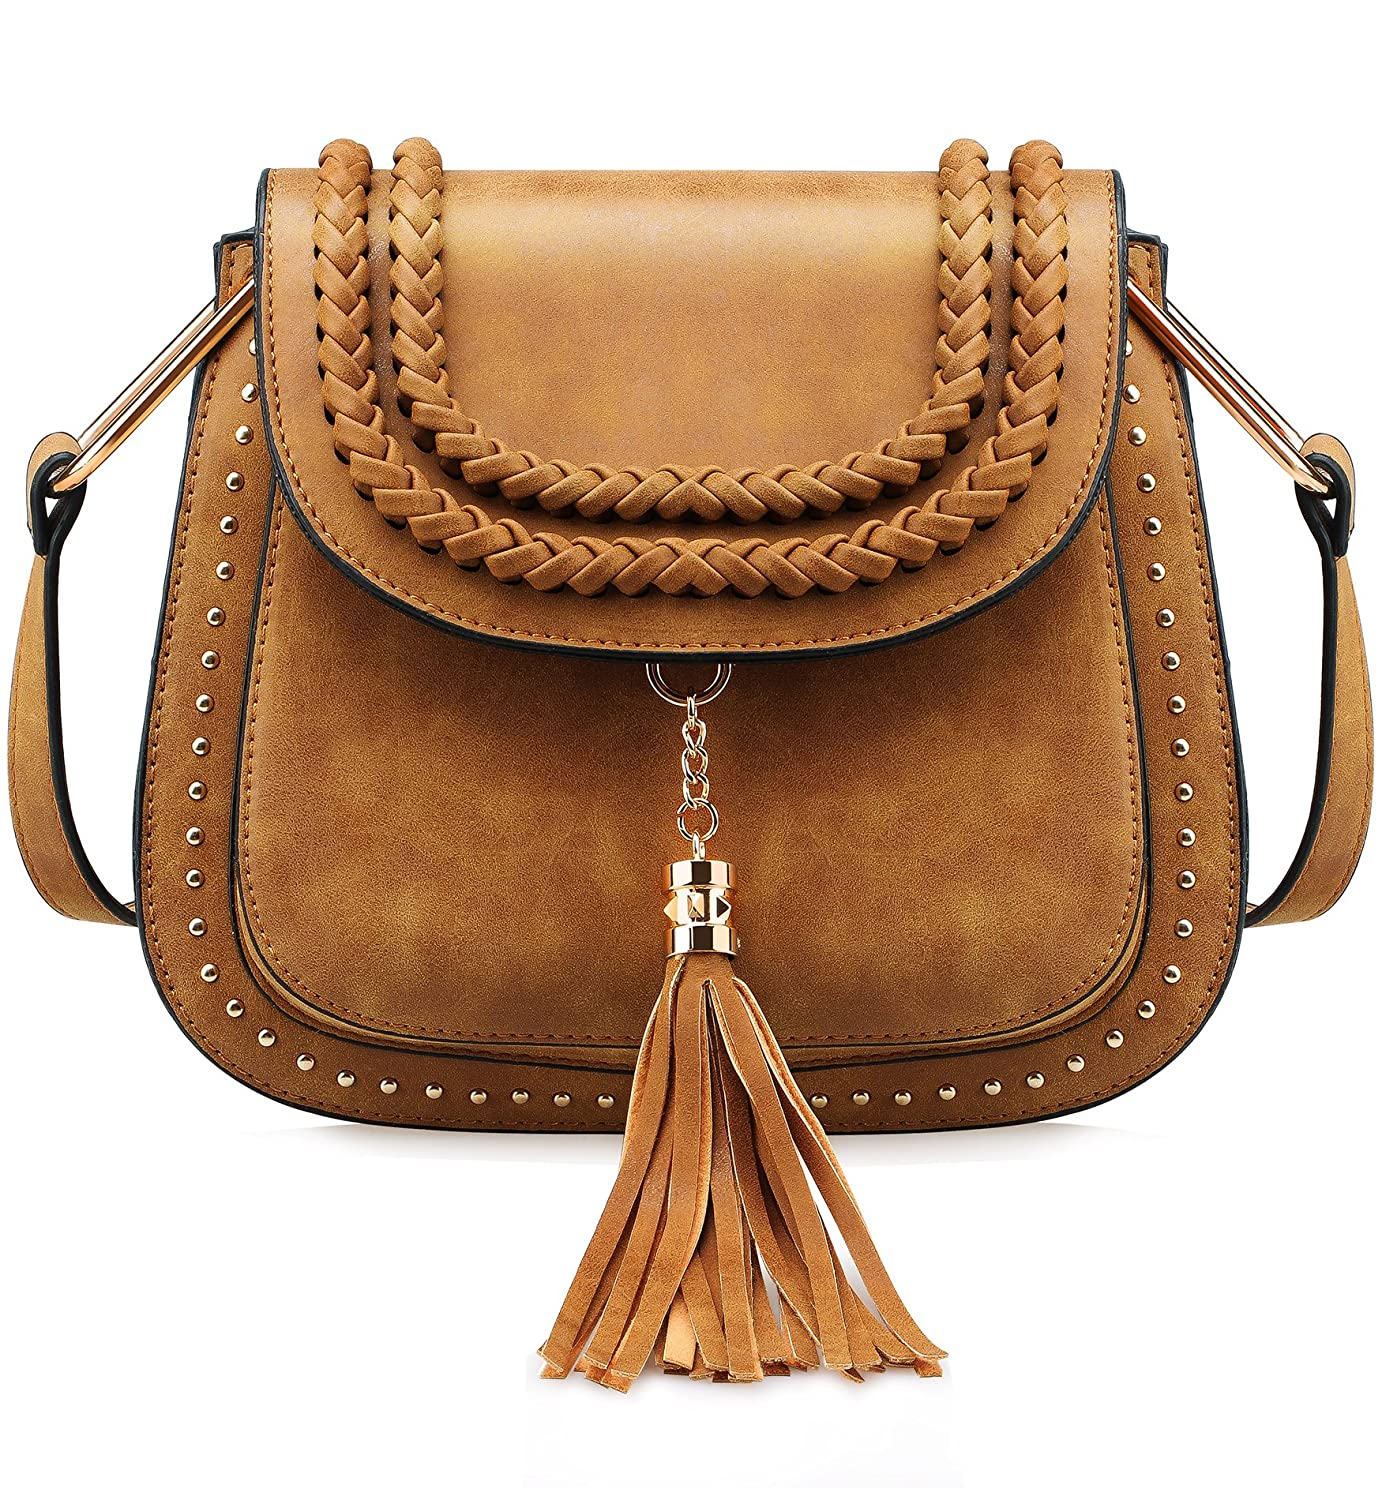 Tom Clovers Womens Vintage Tassel Saddle Shoulder Bag Crossbody Bag Sling Bag Shopping Travel Satchel XKB-B52-1